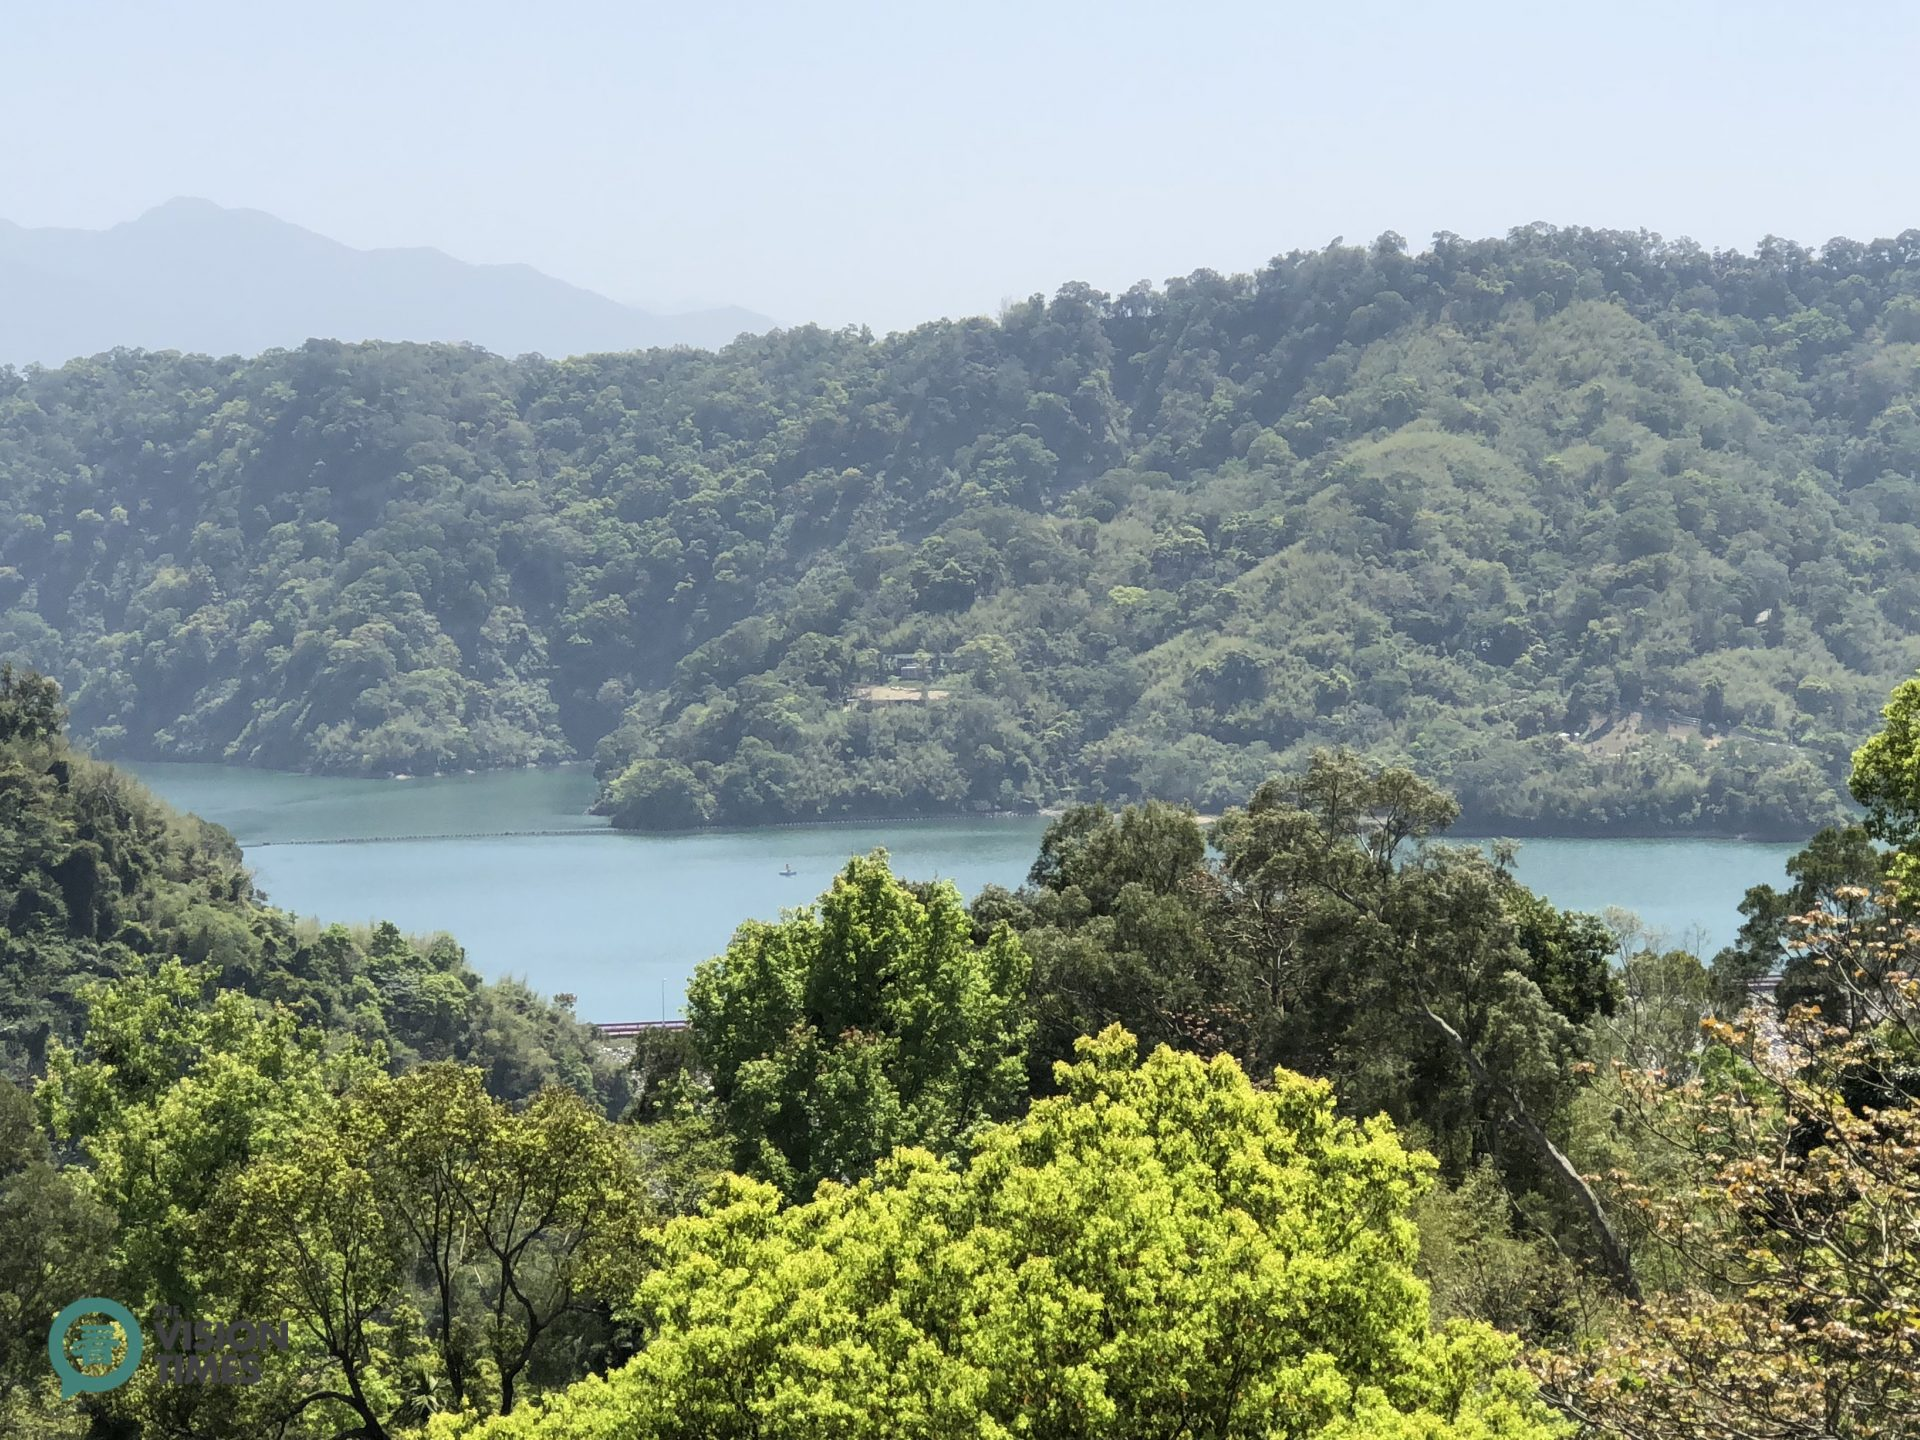 Visitors can enjoy the panoramic view of the Liyutan Reservoir from the restaurant. (Image: Billy Shyu / Vision Times)